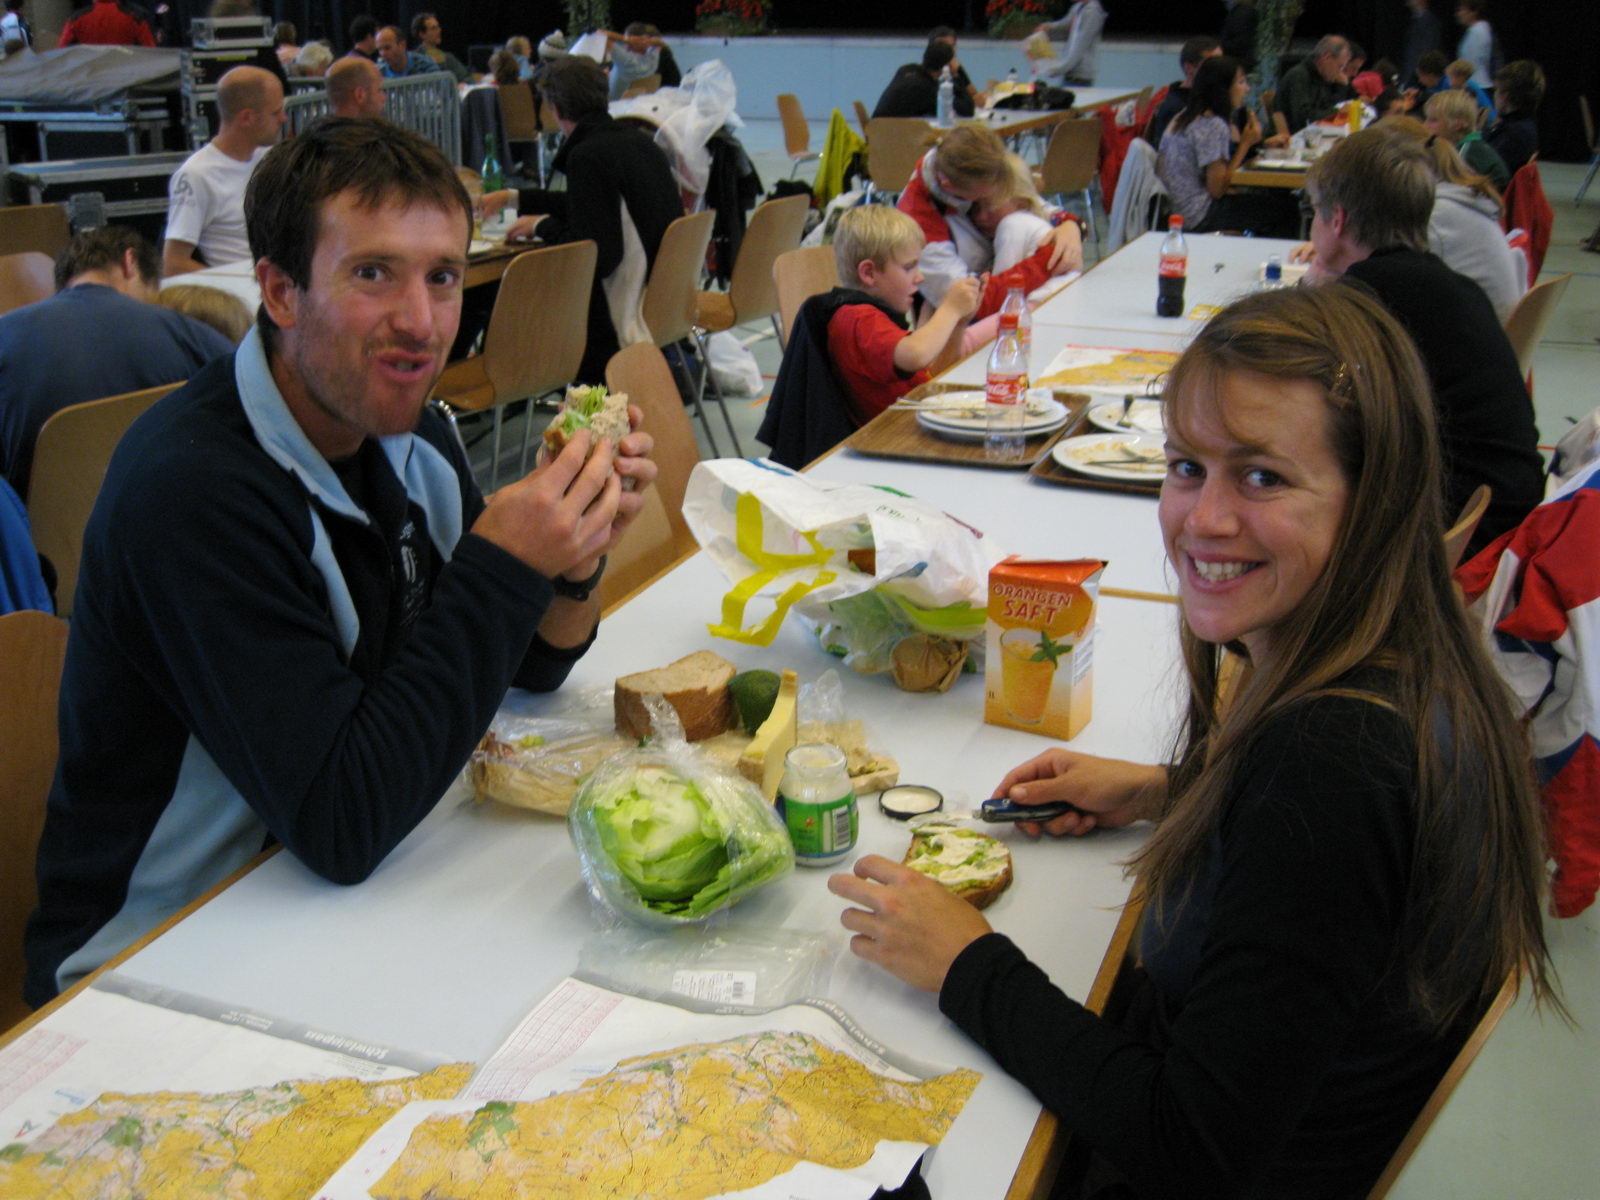 Eating at the events centre (Swiss O Week, Switzerland)